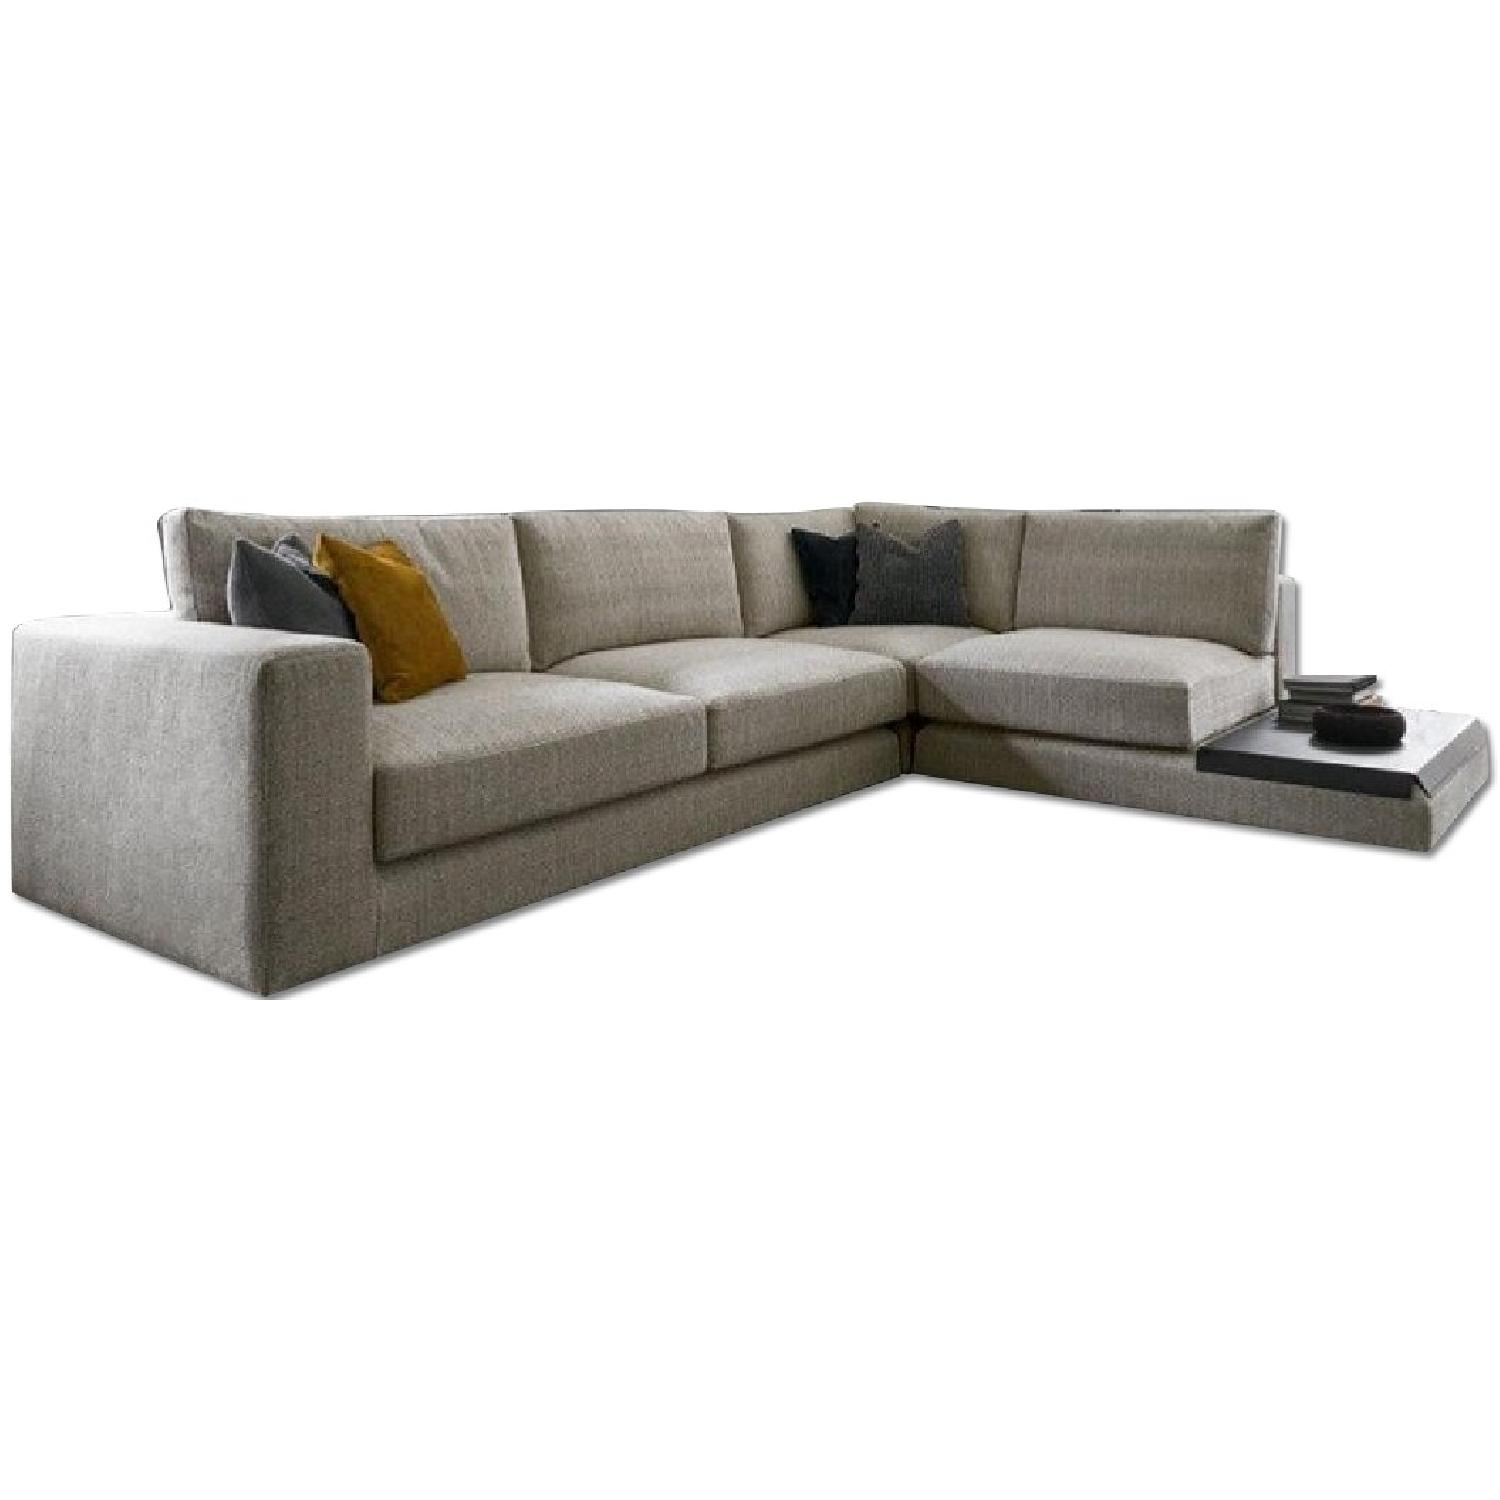 Calligaris Kora Sectional Sofa